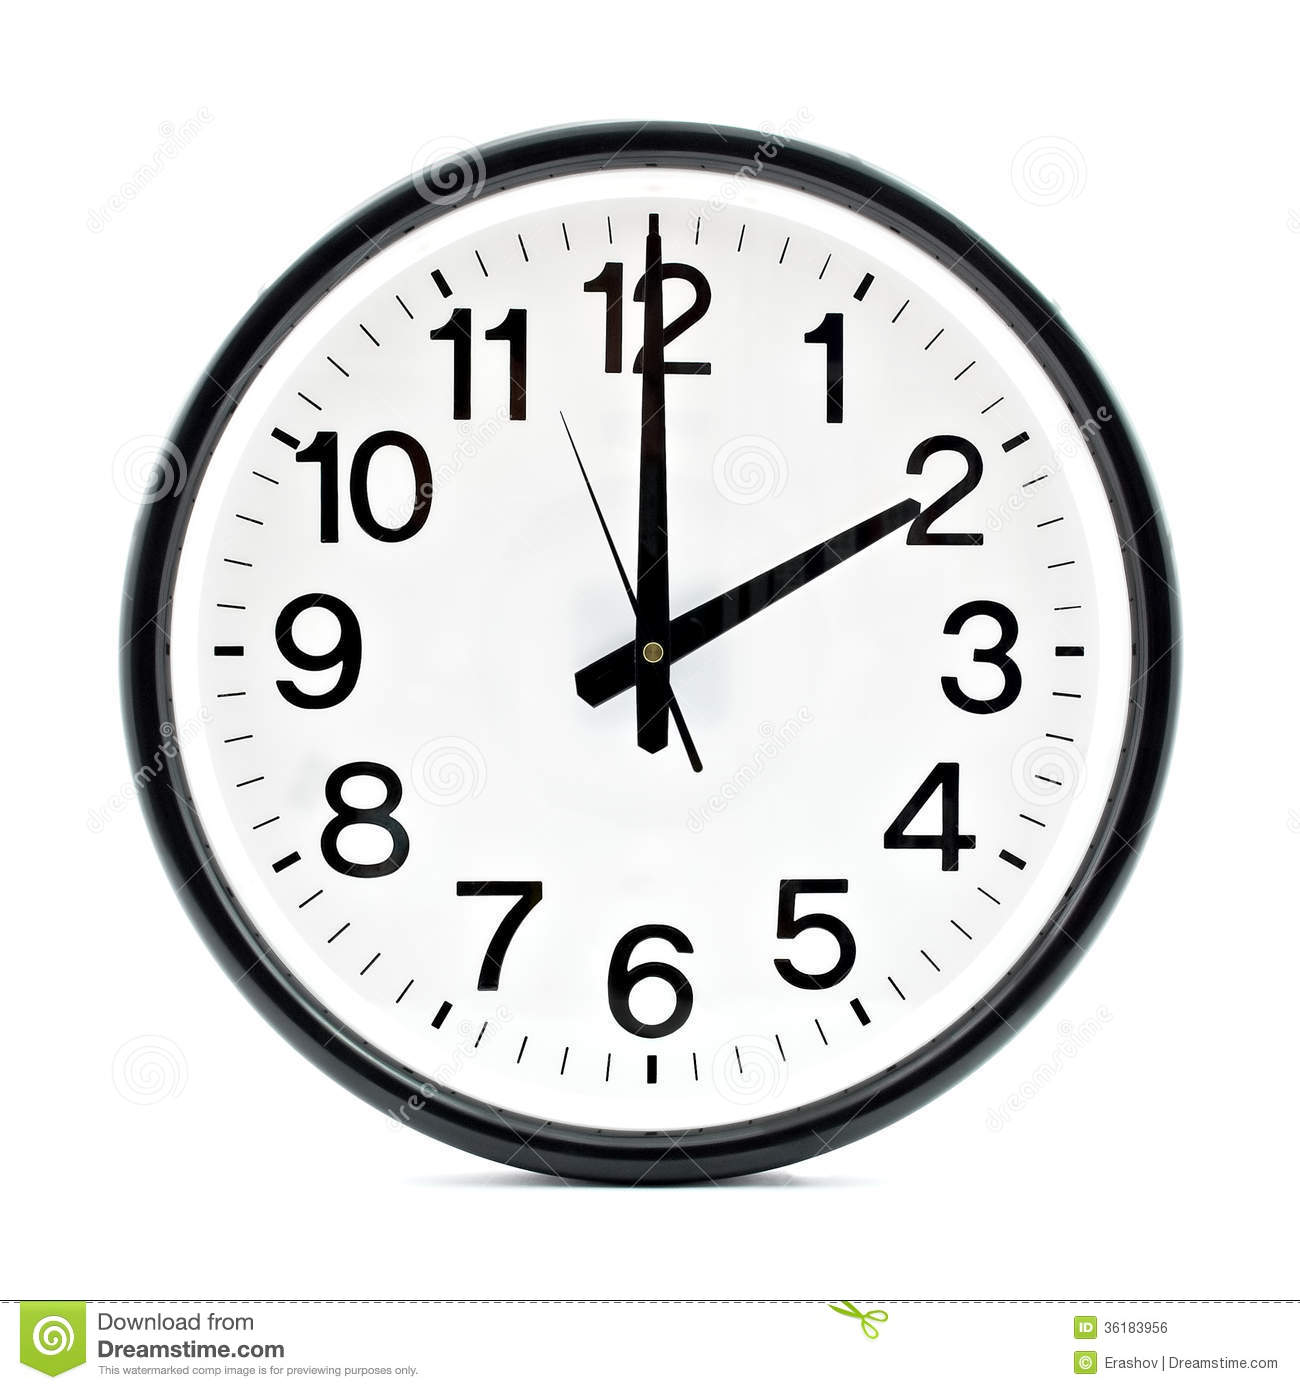 clock clipart black and white free - photo #19